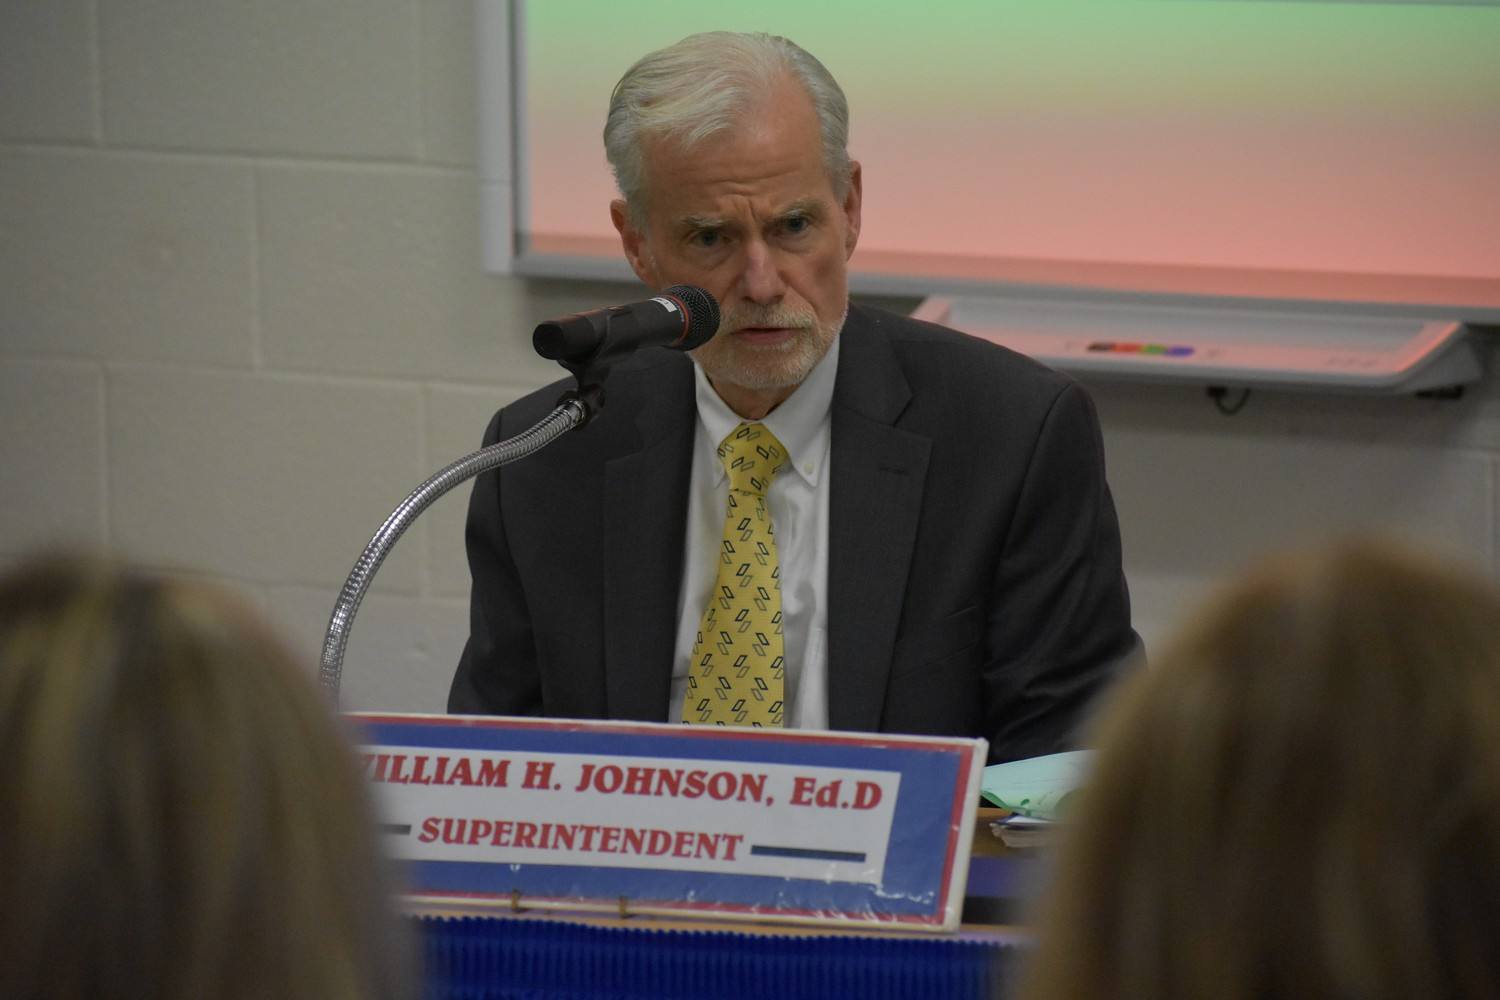 Dr. William H. Johnson announced that he plans to retire in June after more than 40 years of service in the district.